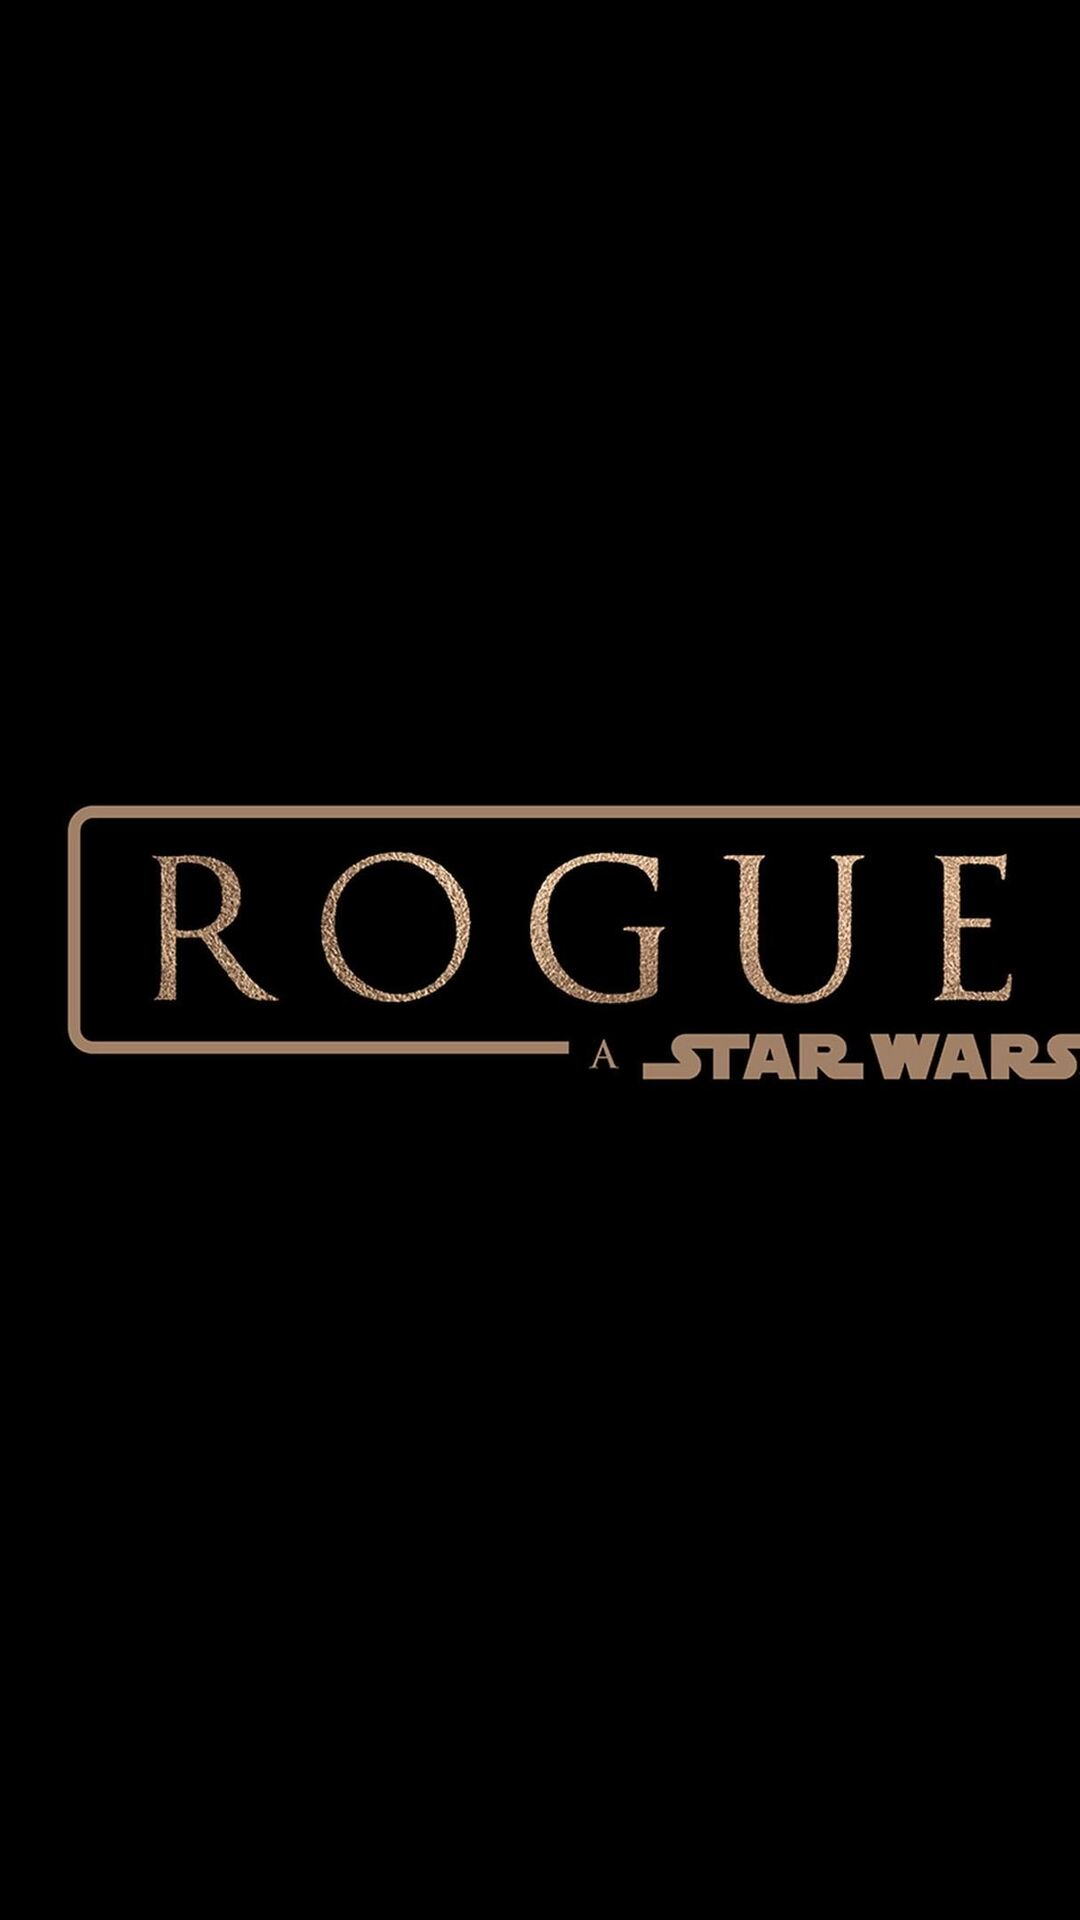 1080x1920 Rogue One A Star Wars Story 4k Poster Iphone 76s6 Plus